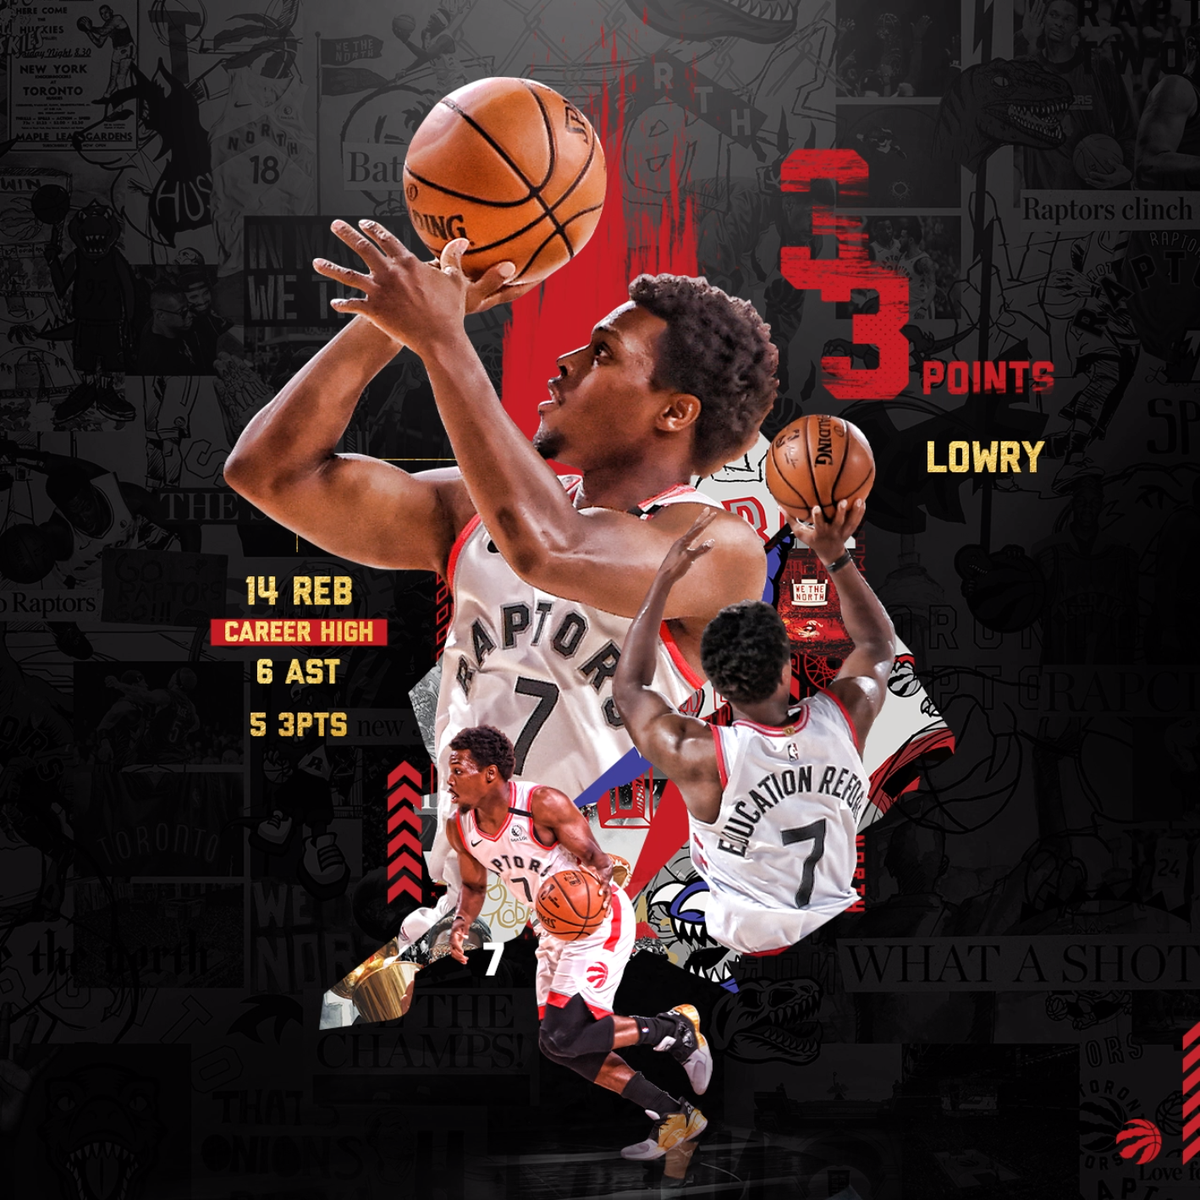 ICYMI, Kyle Lowry is very good at basketball.   33 Pts   14 Rebs (Career-high)   6 Ast   5 3pm https://t.co/Tmx0x5vdY2